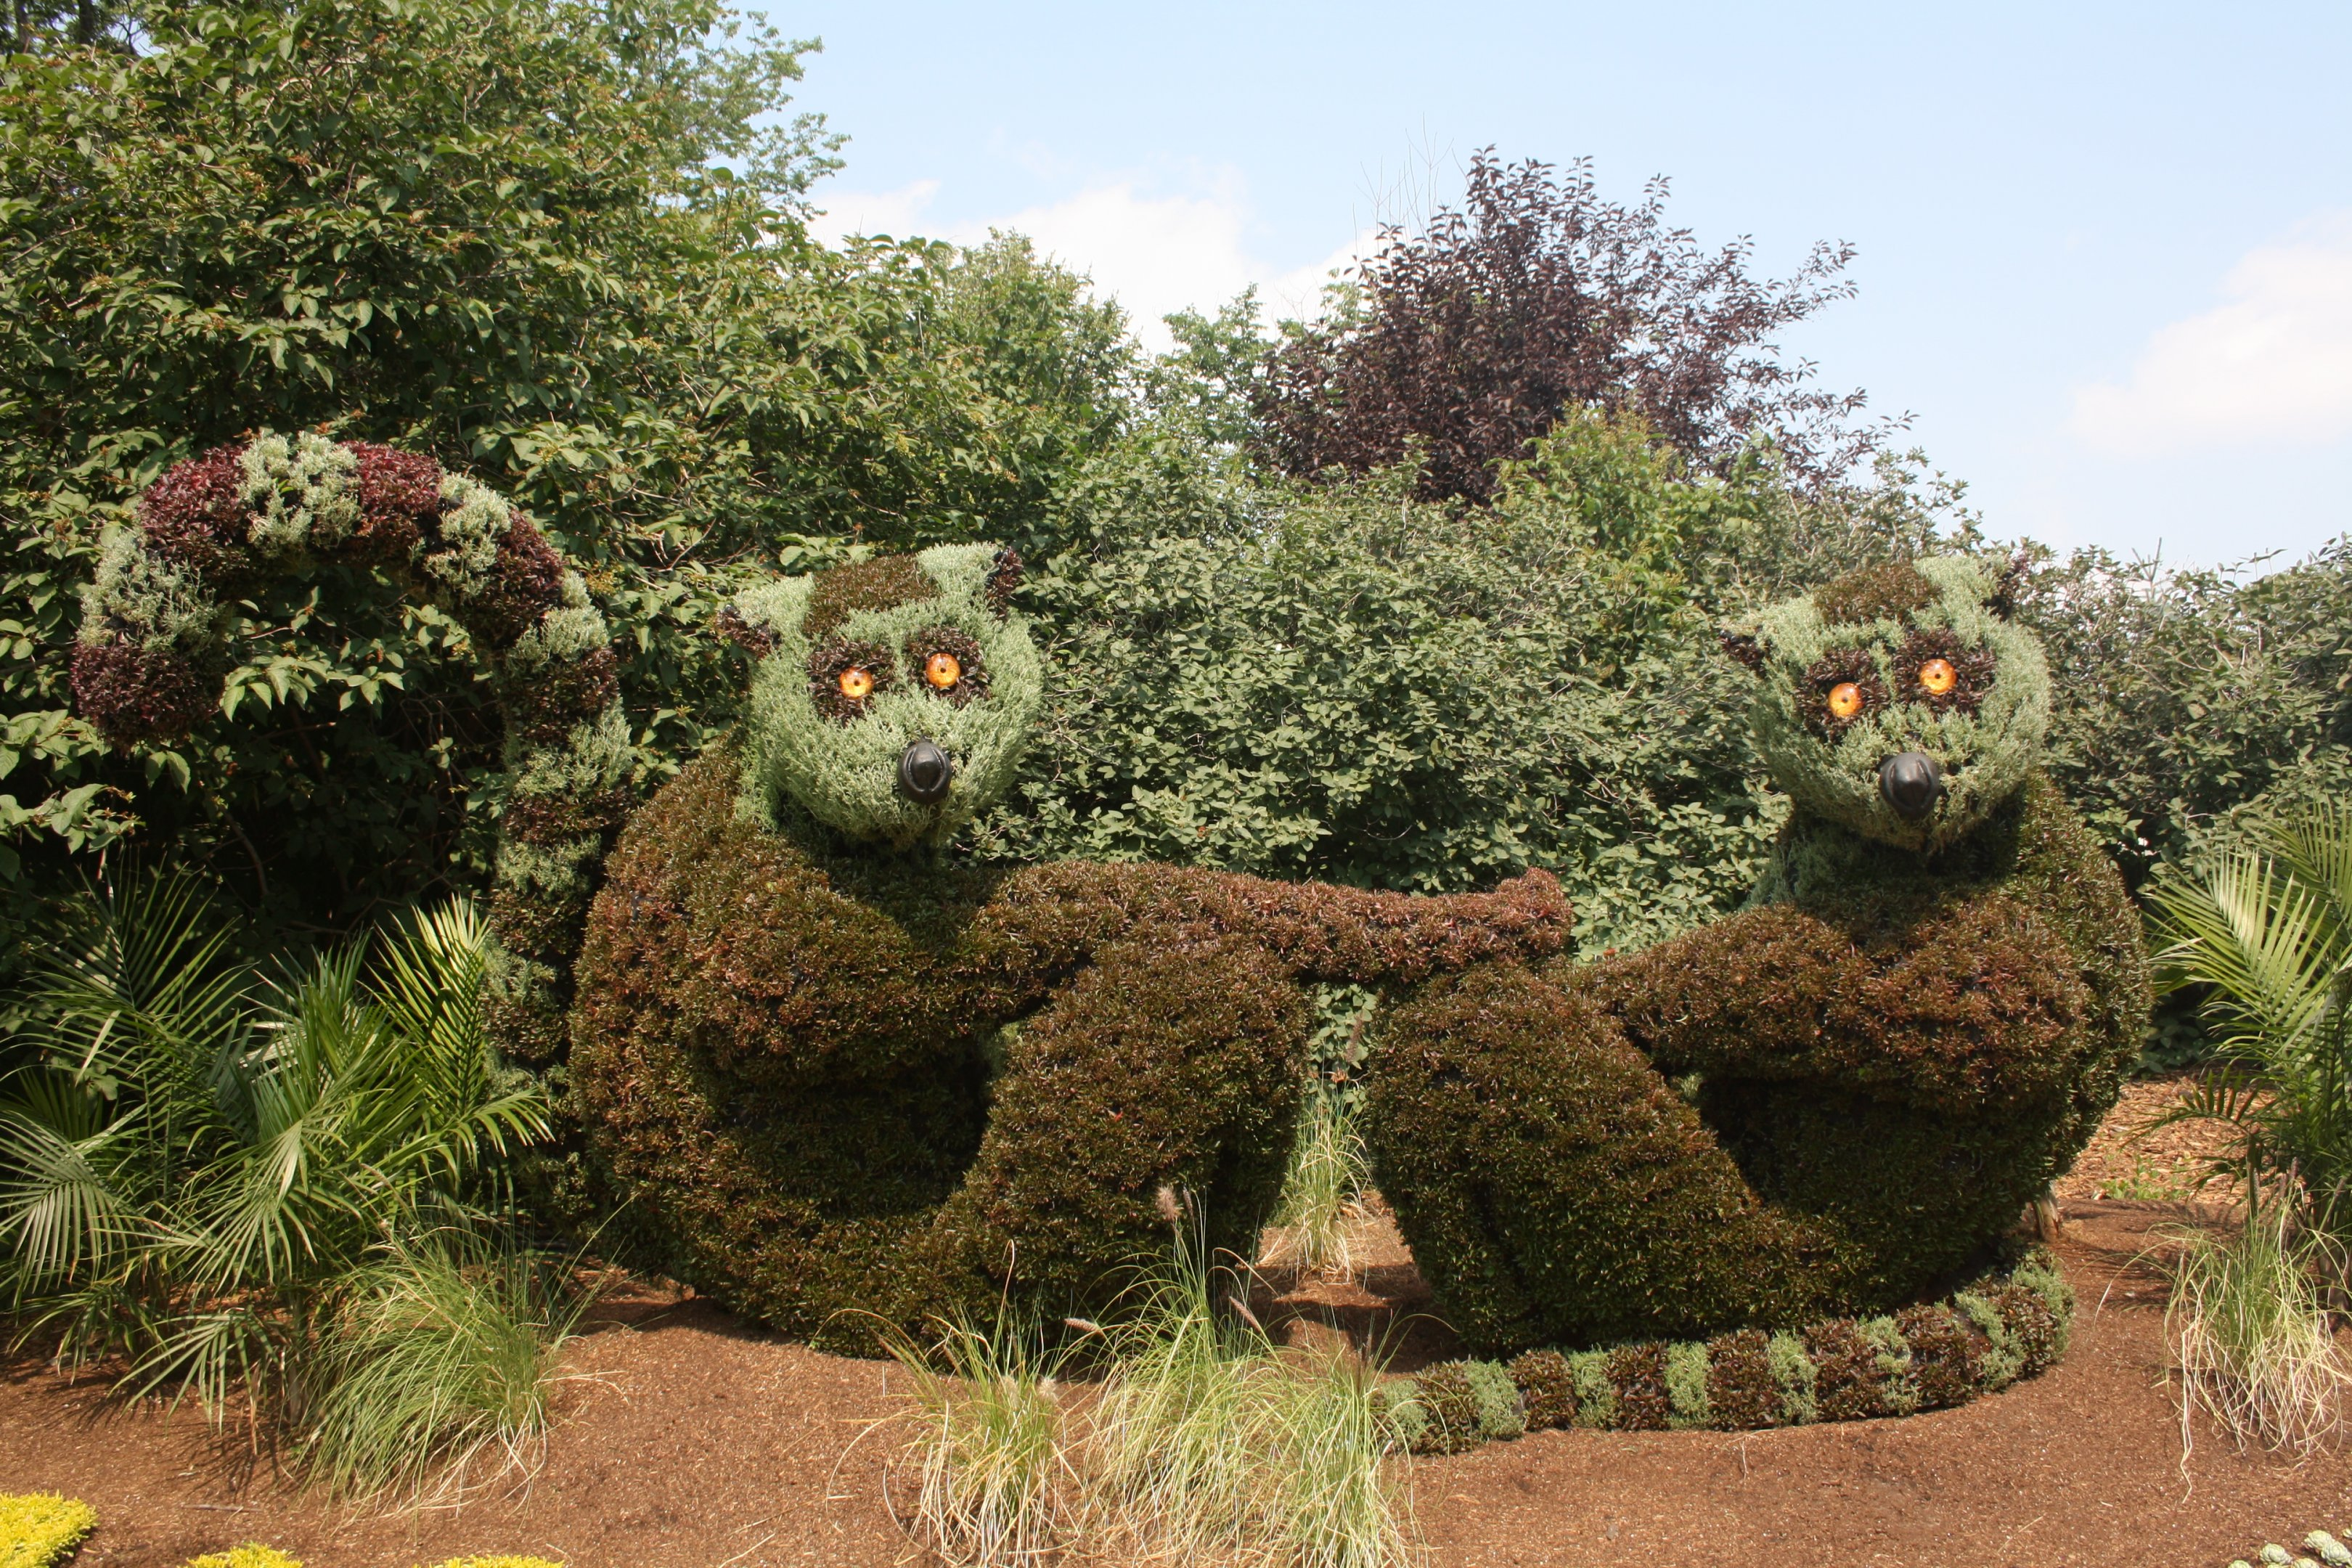 Ring-Tailed Lemur Topiary - Awesome! | ZooChat